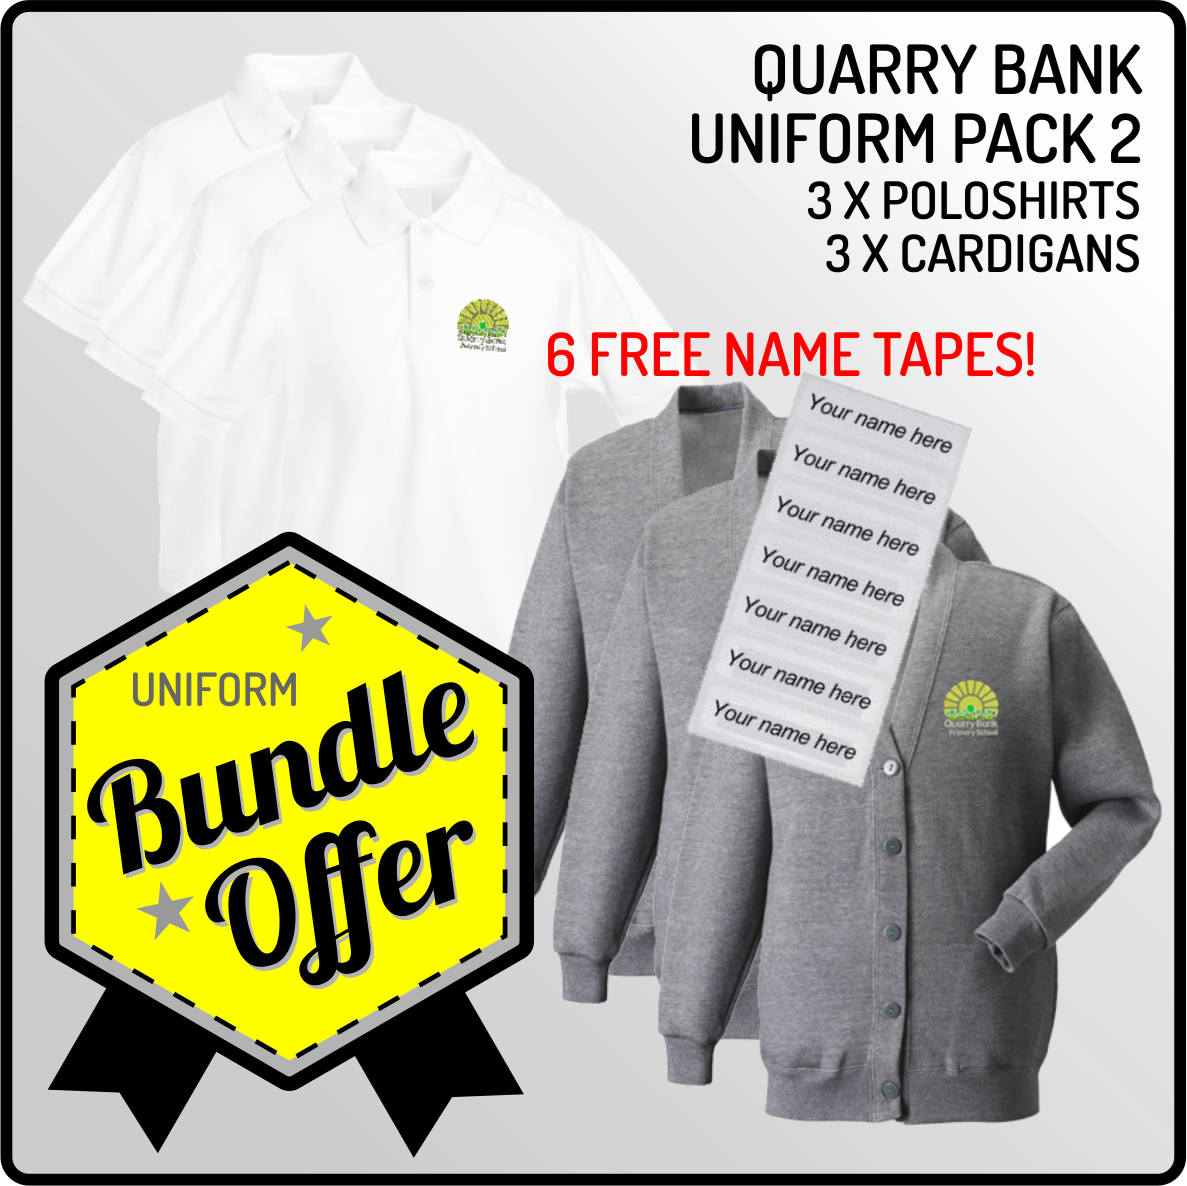 Bundle offer of 3 Cardigans  & 3 Poloshirts - INCLUDES FREE NAME TAPES